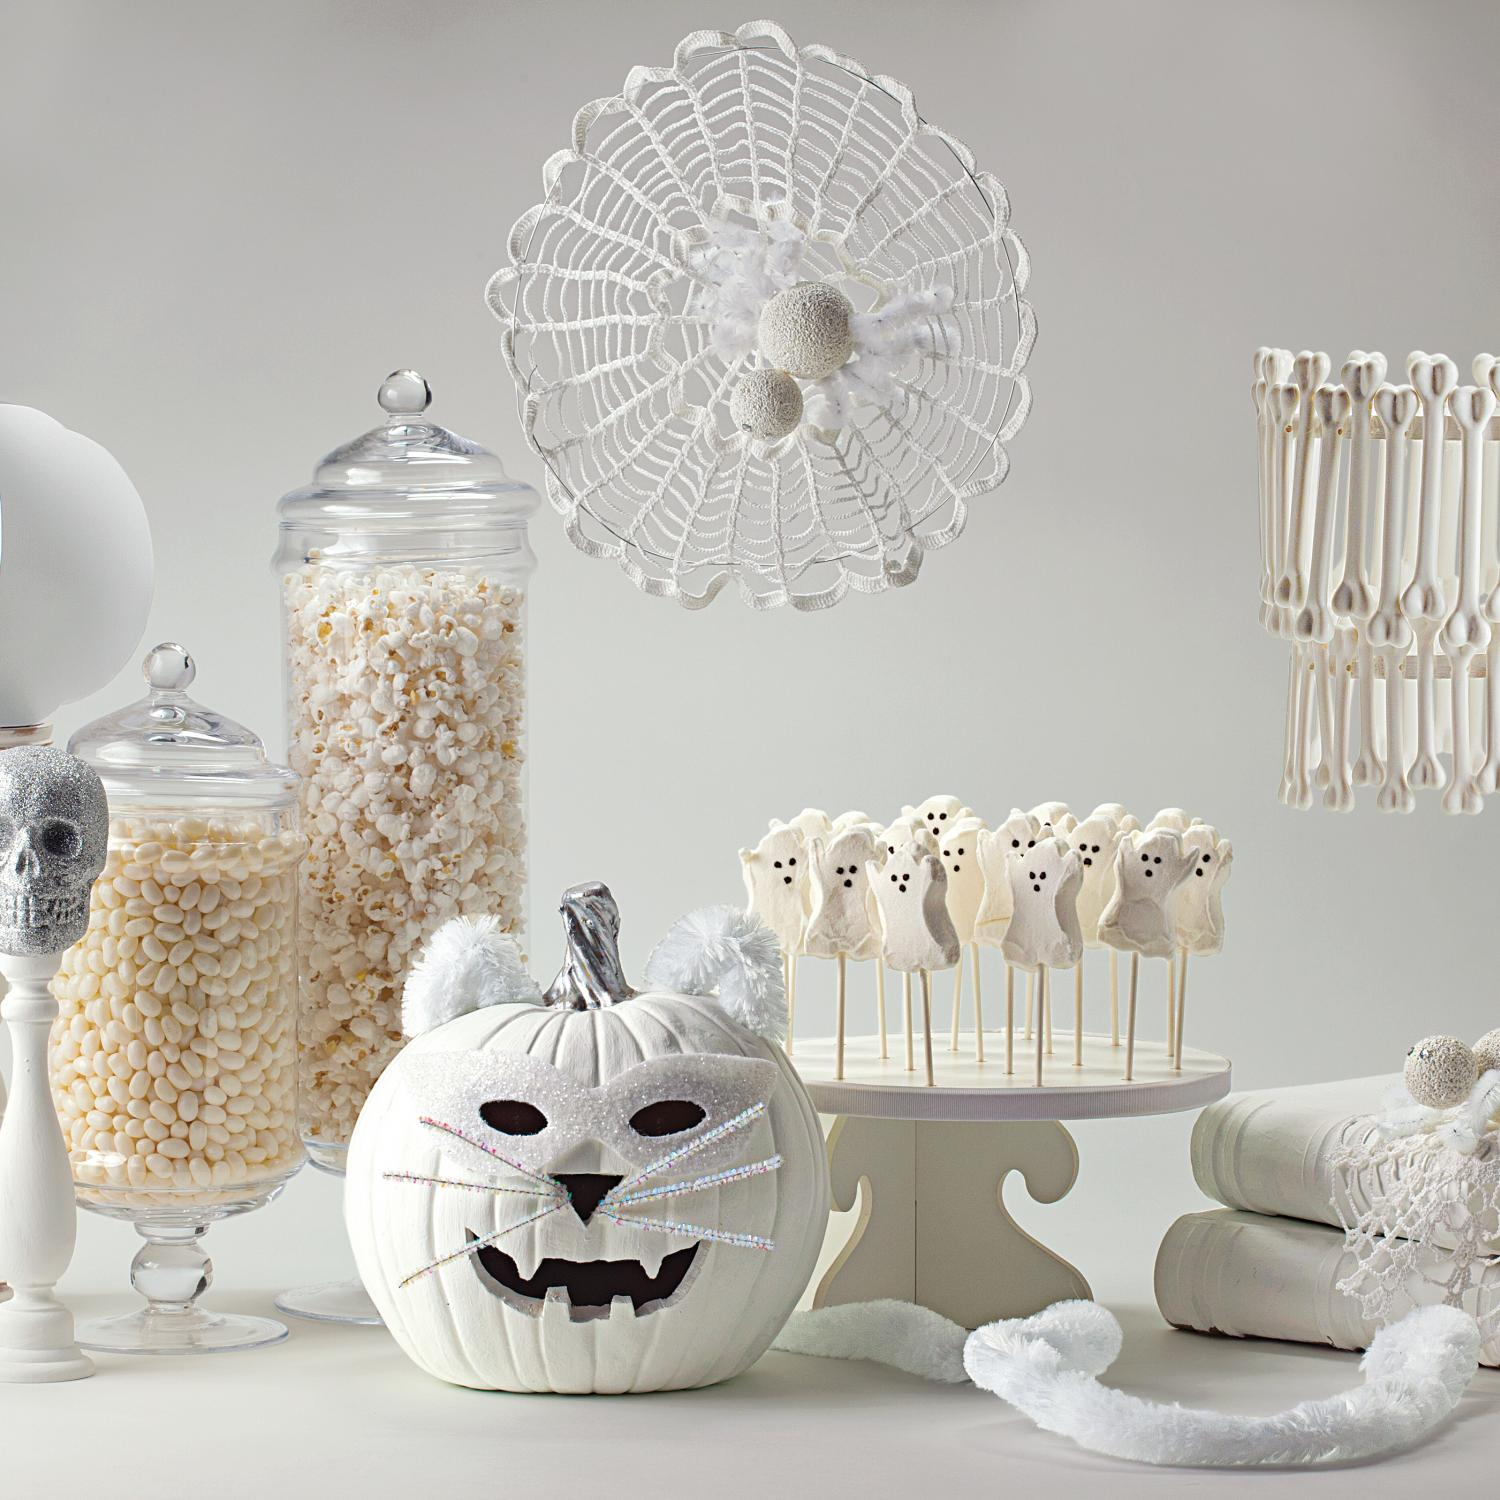 Easy, DIY Halloween Party Ideas